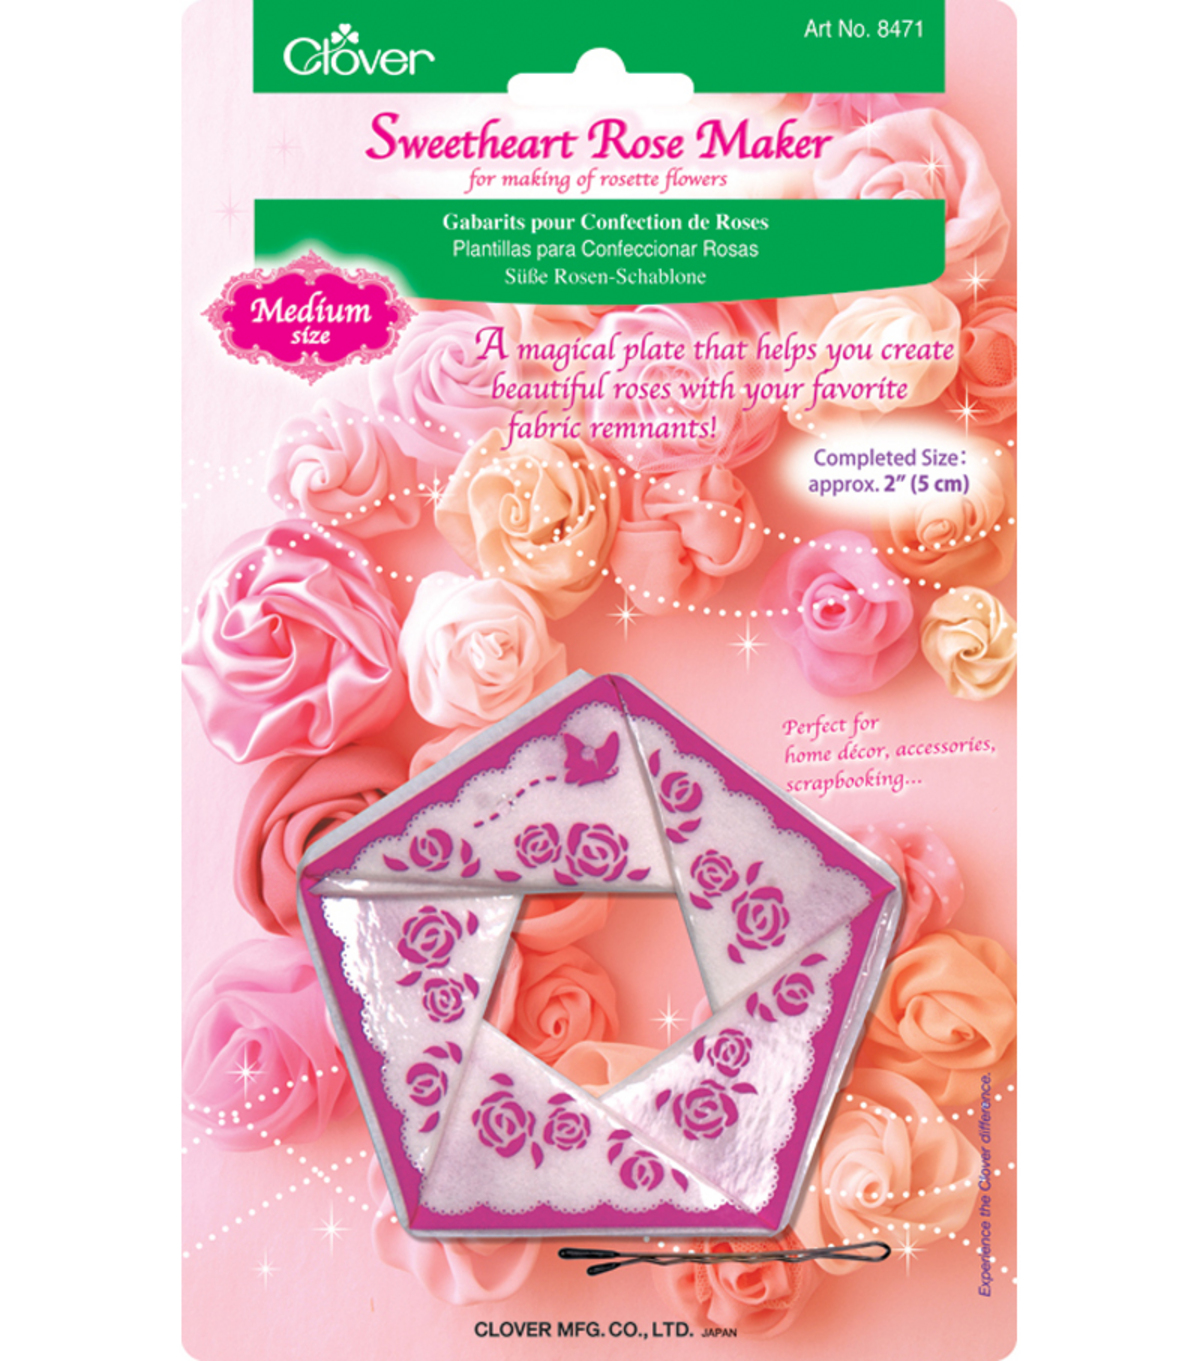 Sweetheart Rose Maker